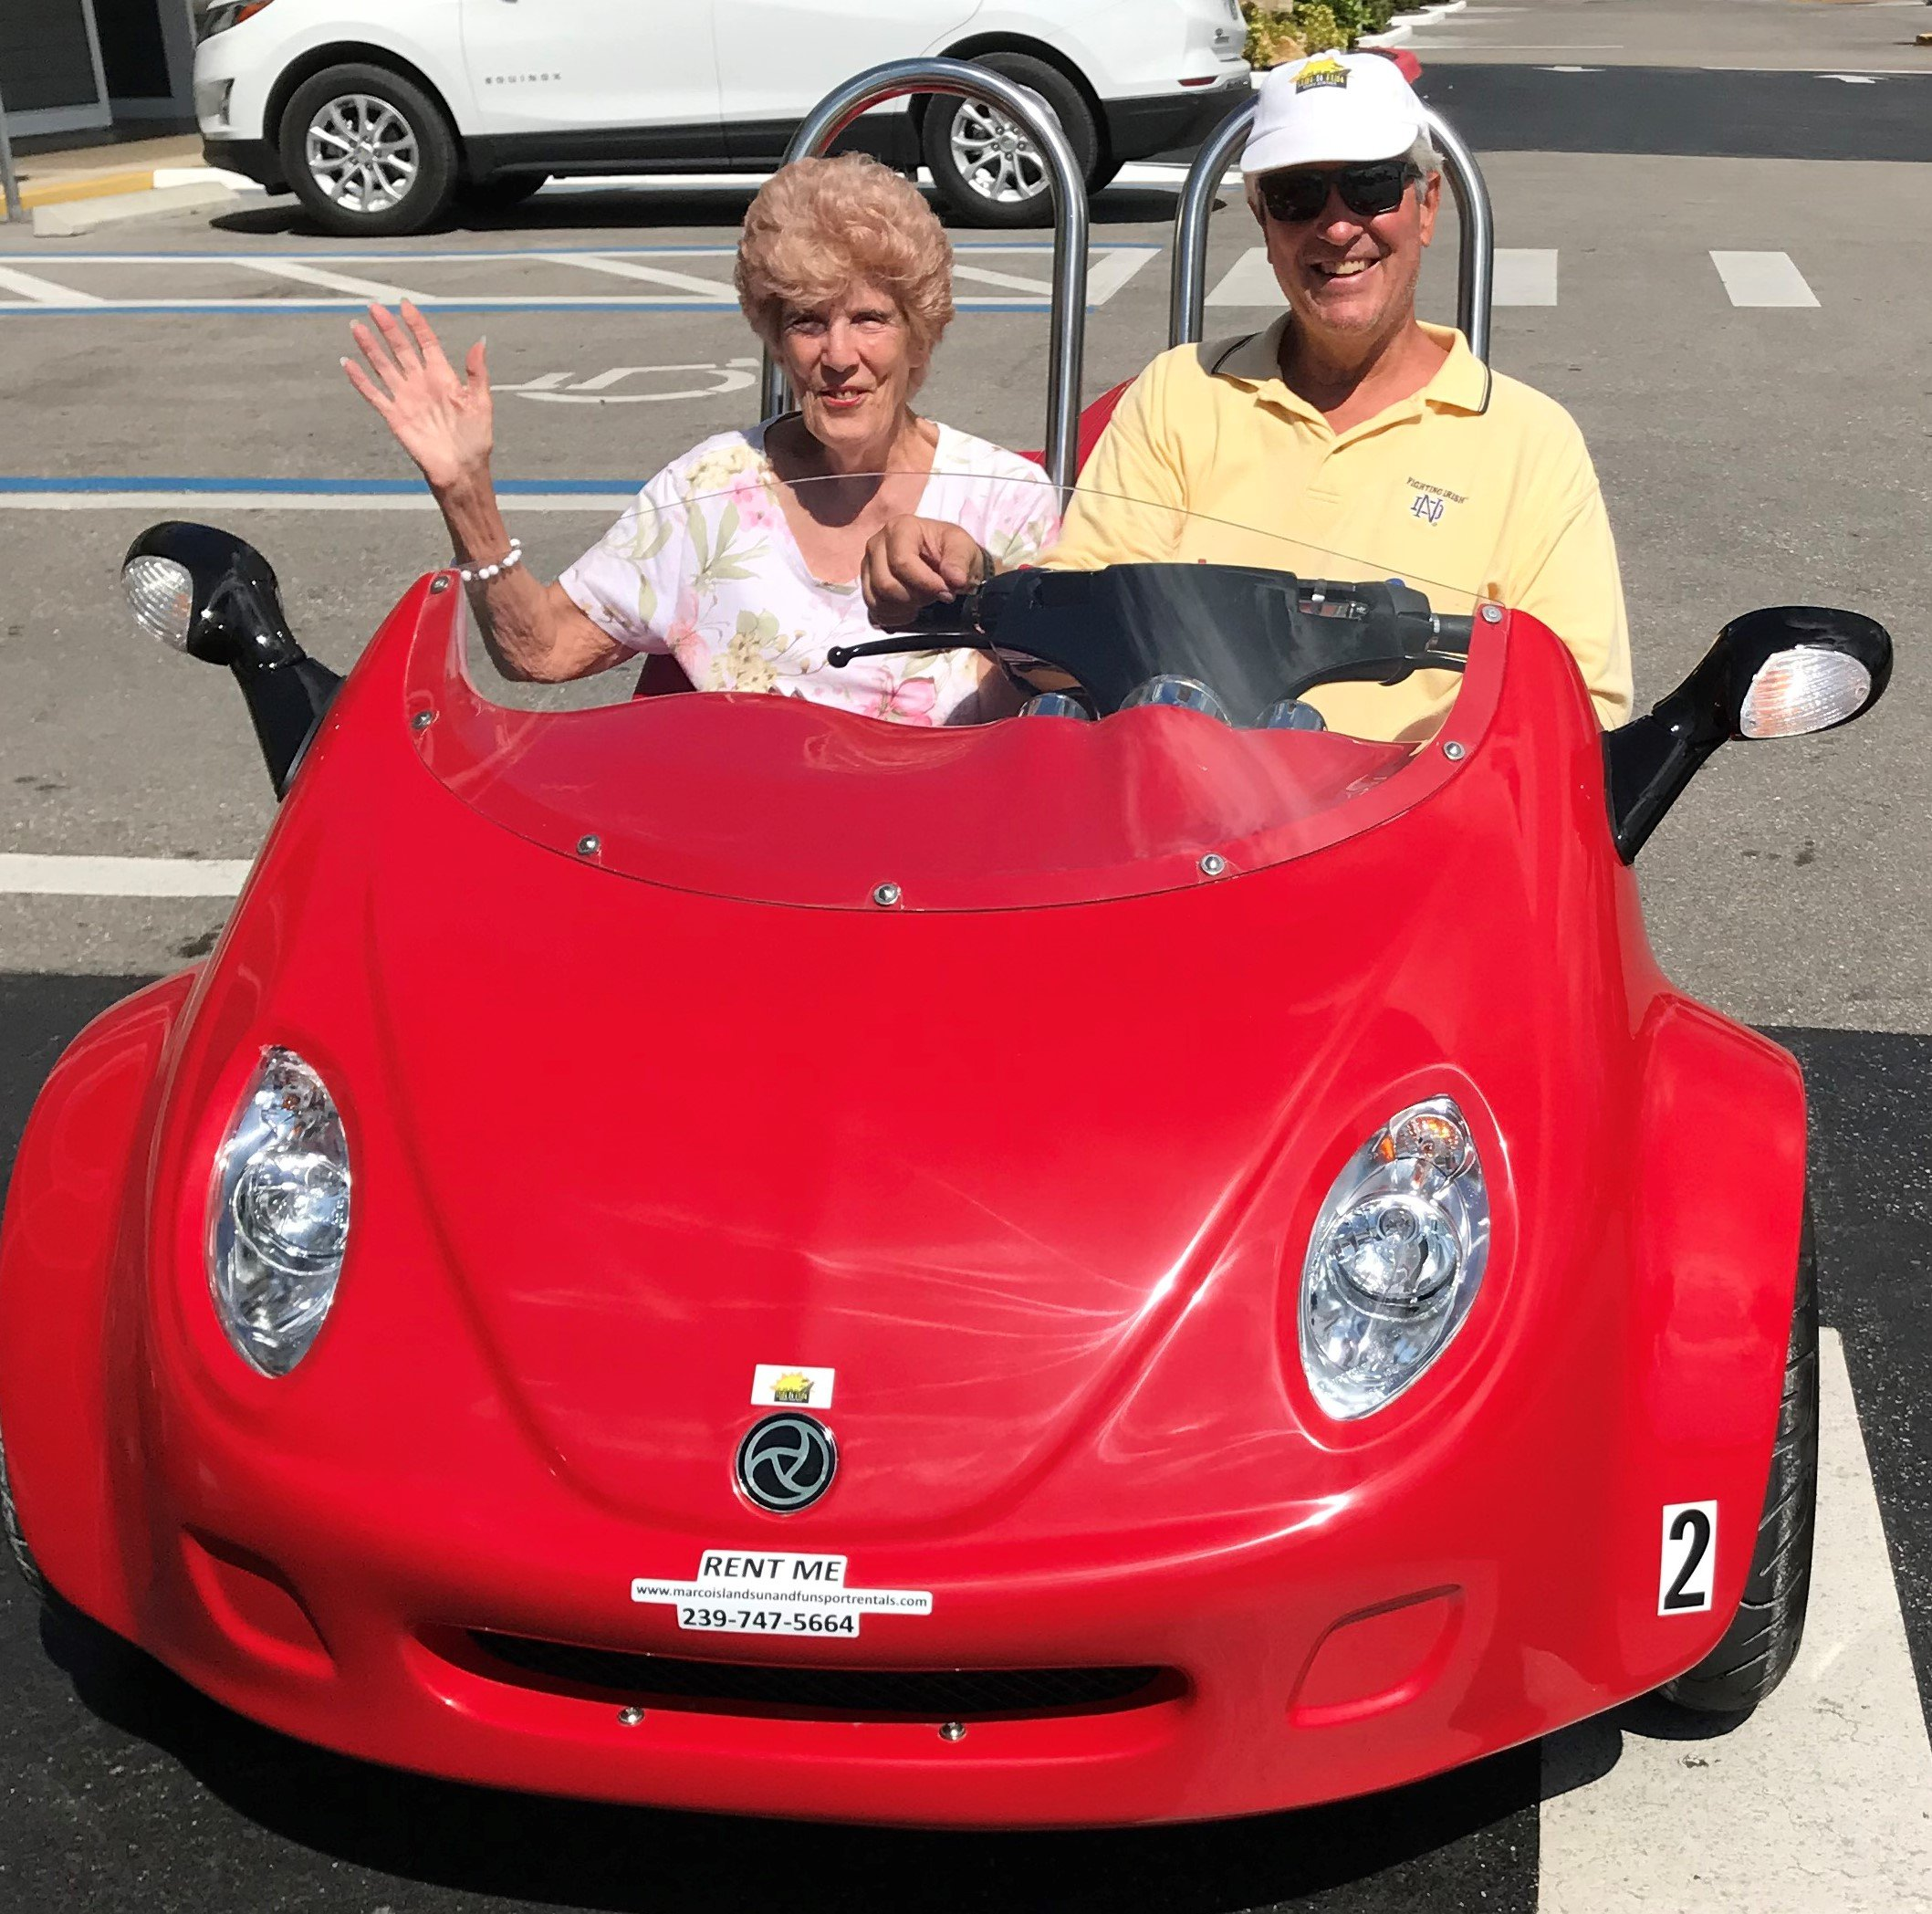 Older couple waves and poses while riding scoot coupe on Marco Island